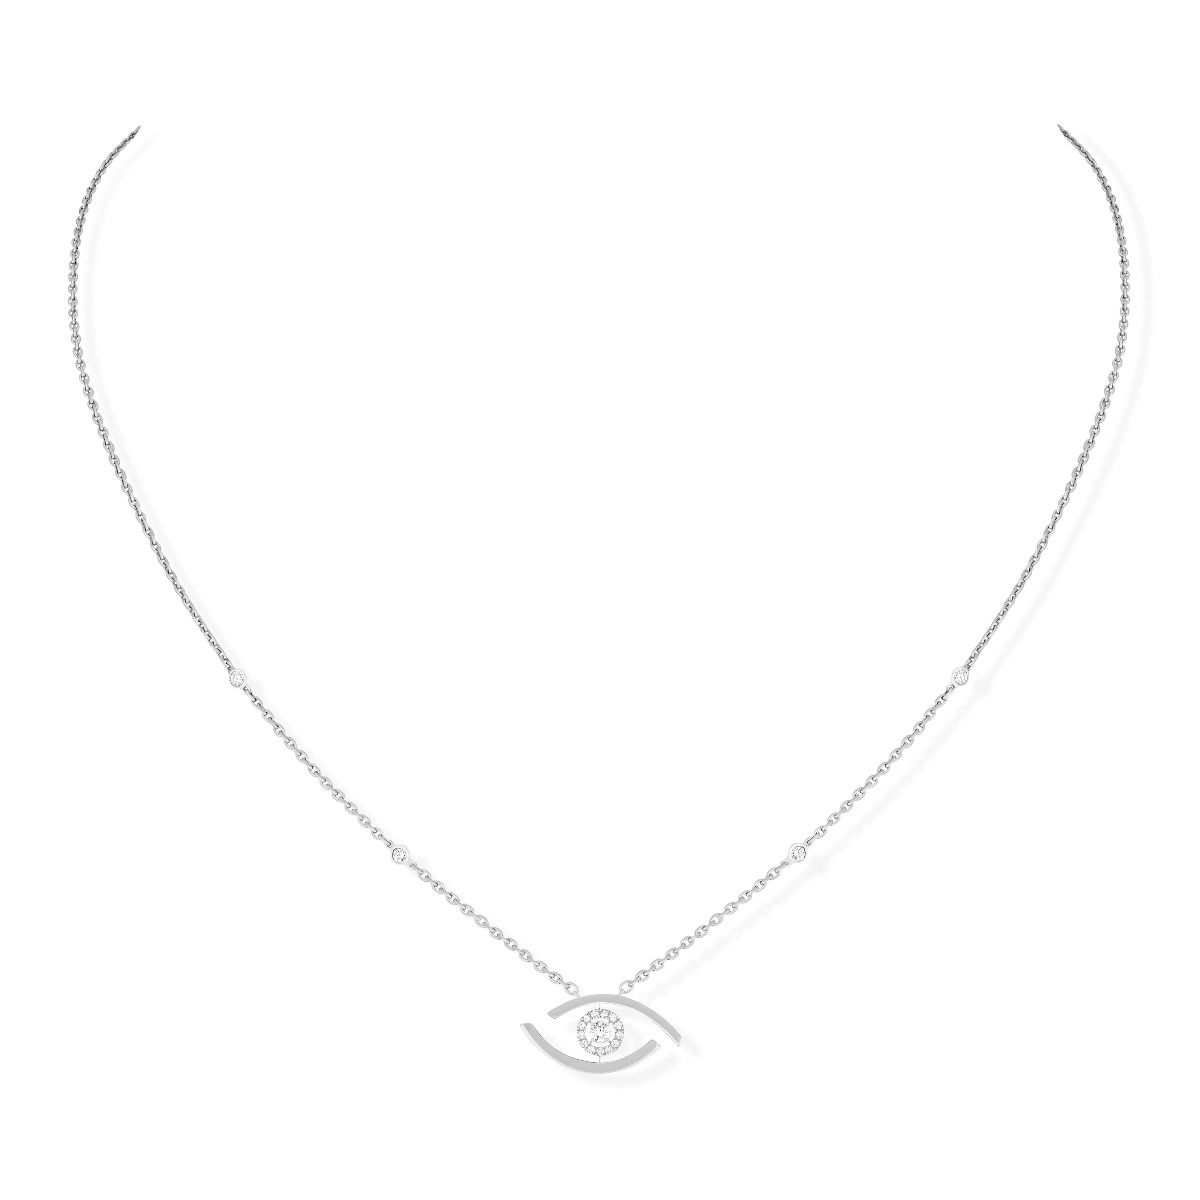 Lucky Eye Necklace - White Gold